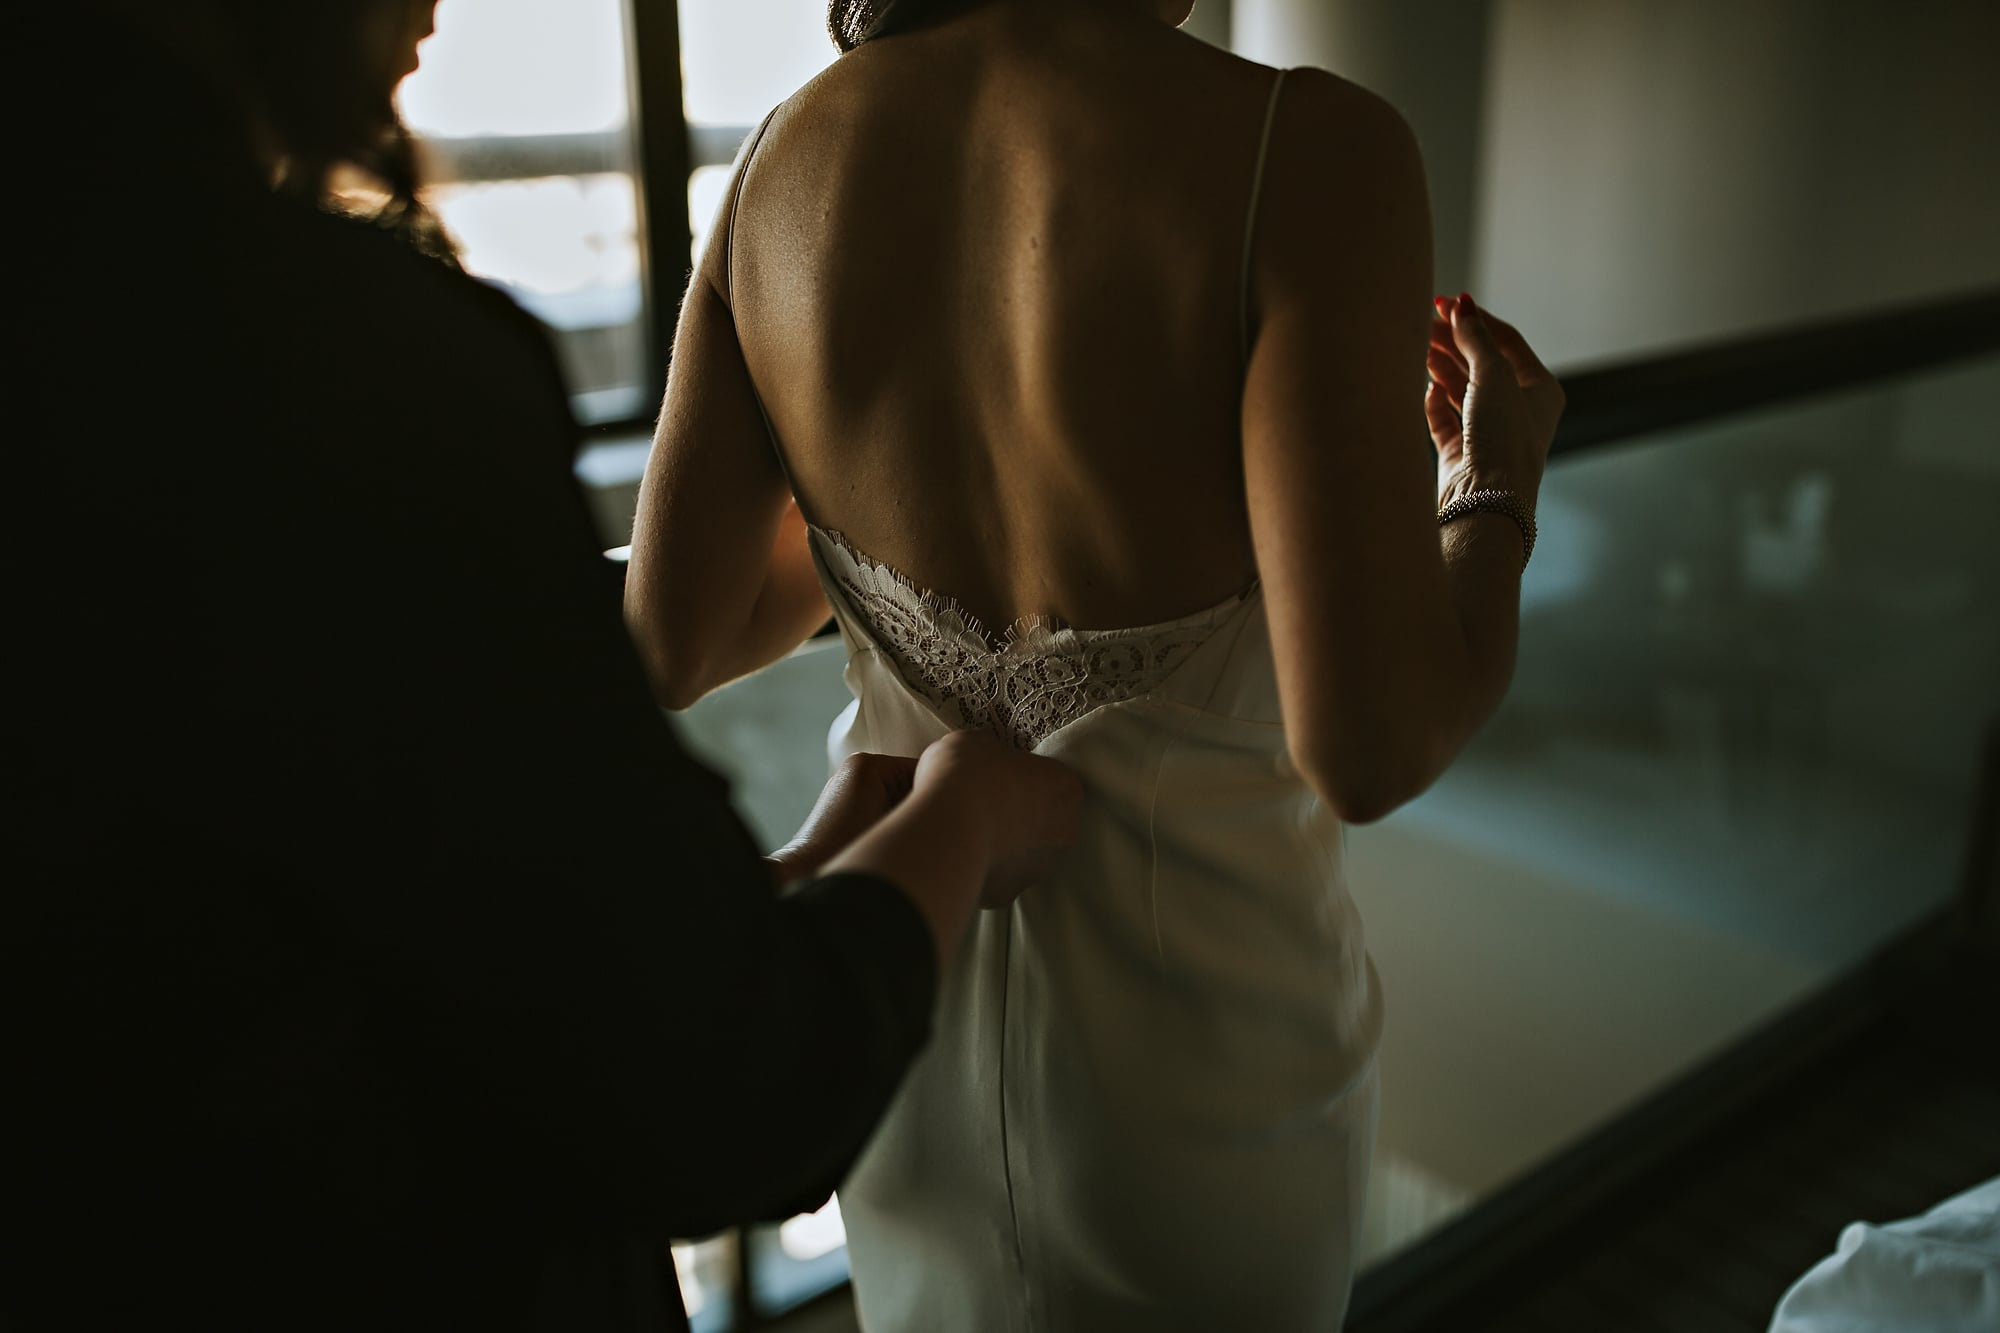 rachel gulotta photography Chicago Wedding-3.jpg